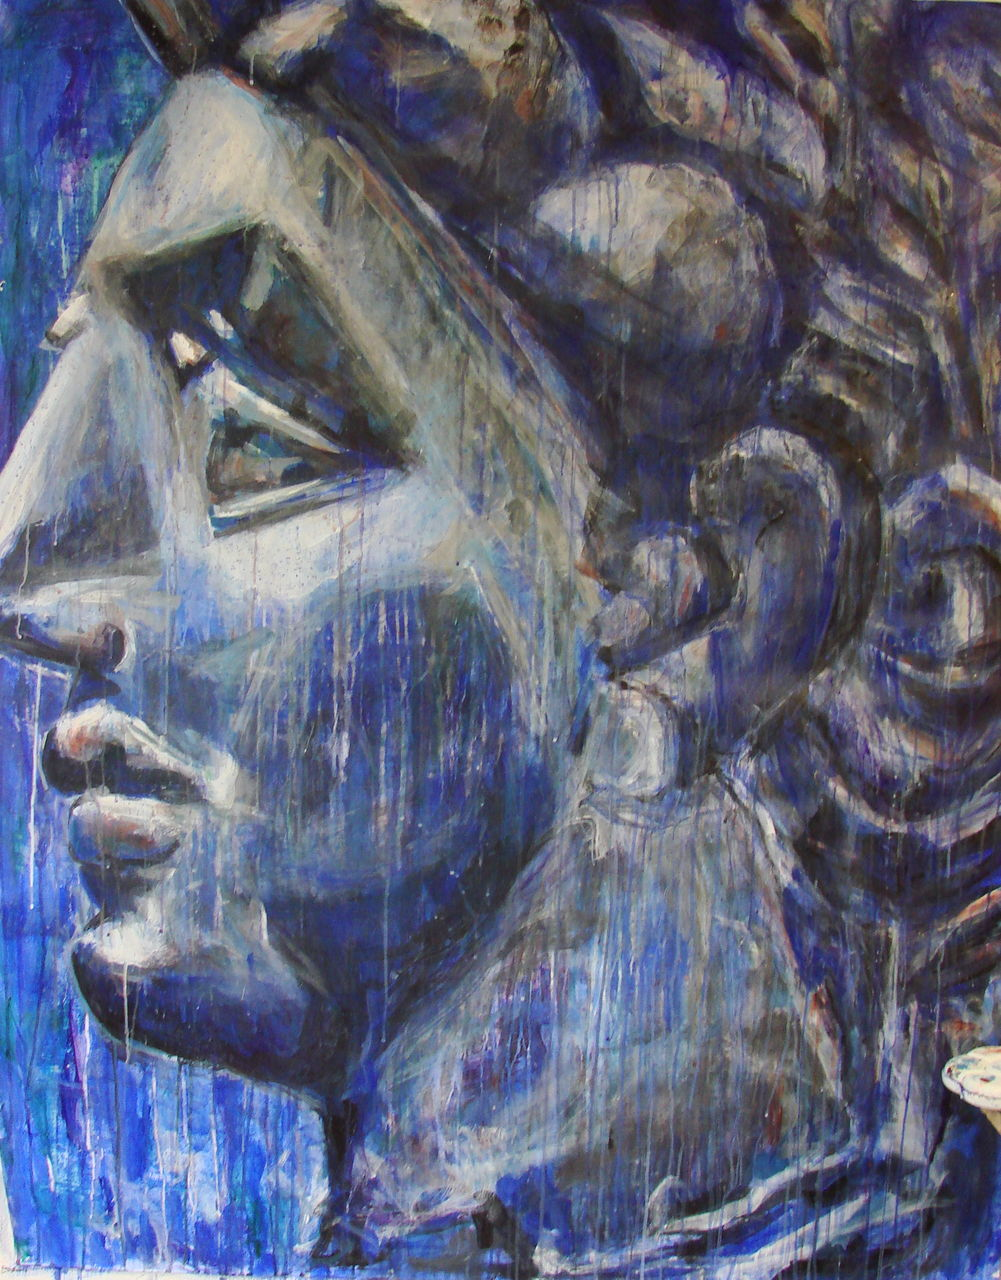 Michele Julie Ansermet Papadopoulos PROFILE IN BLUE